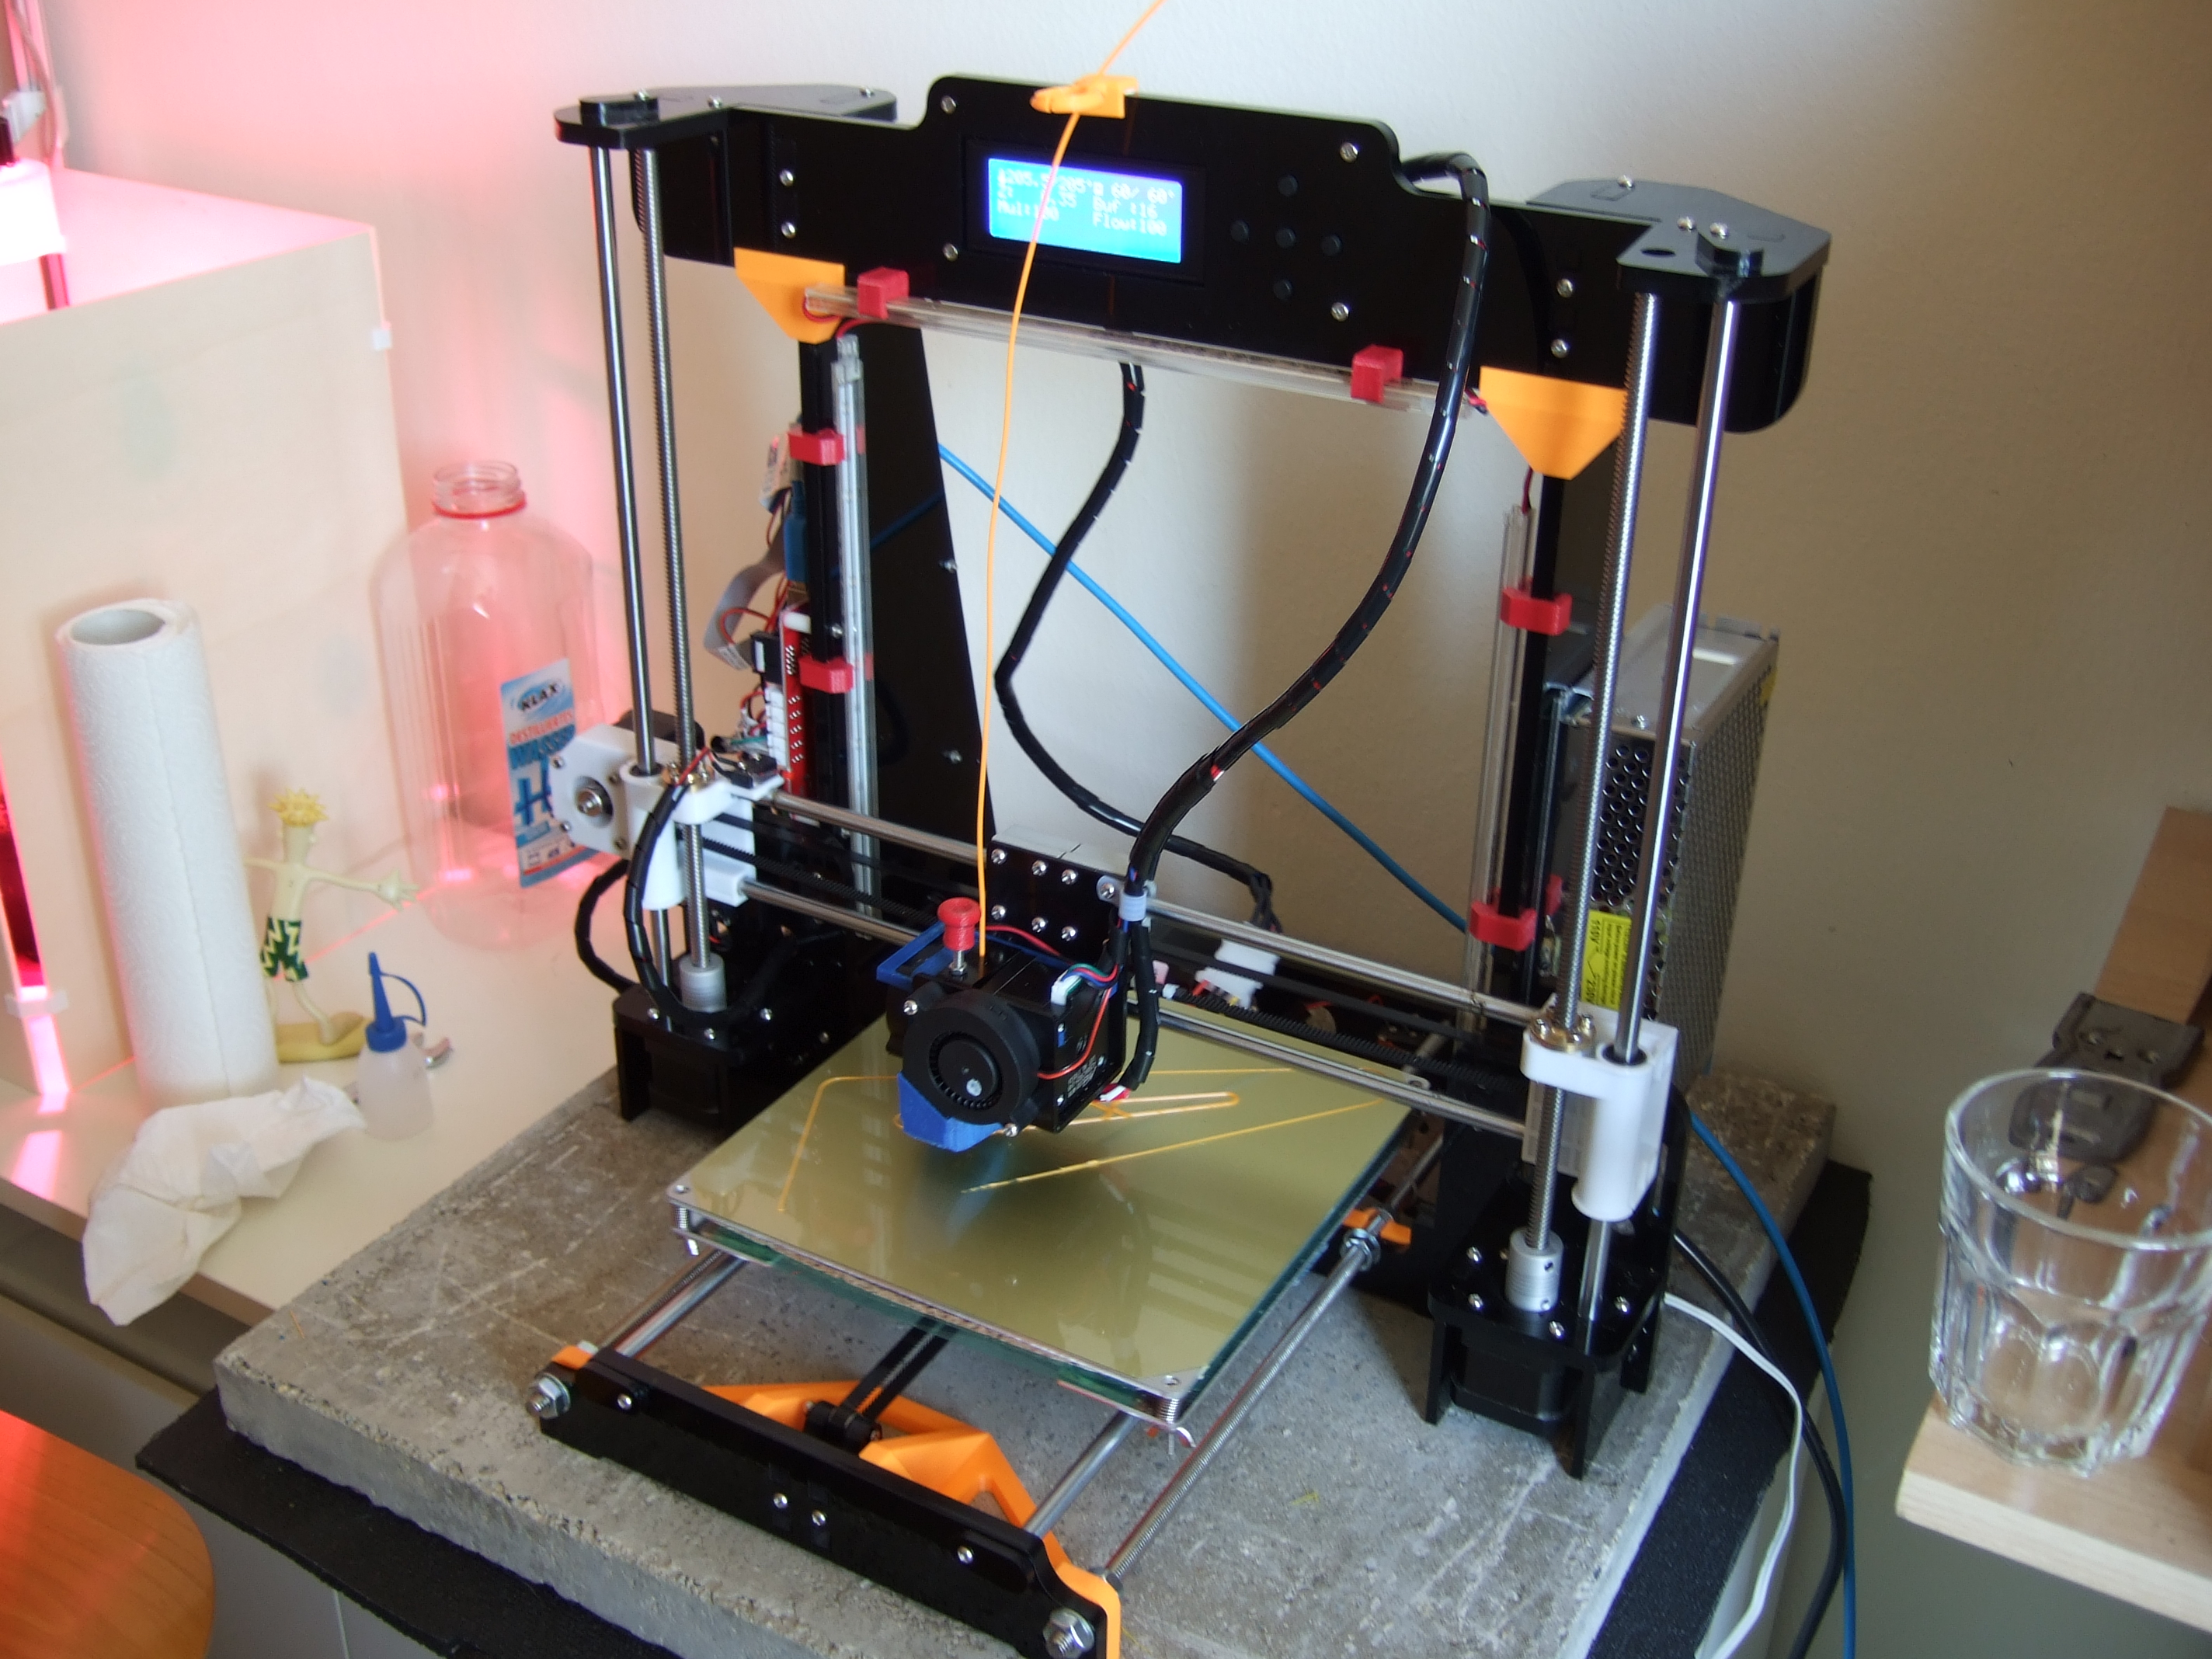 How Cheap Can A 3D Printer Get? The Anet A8 | Hackaday